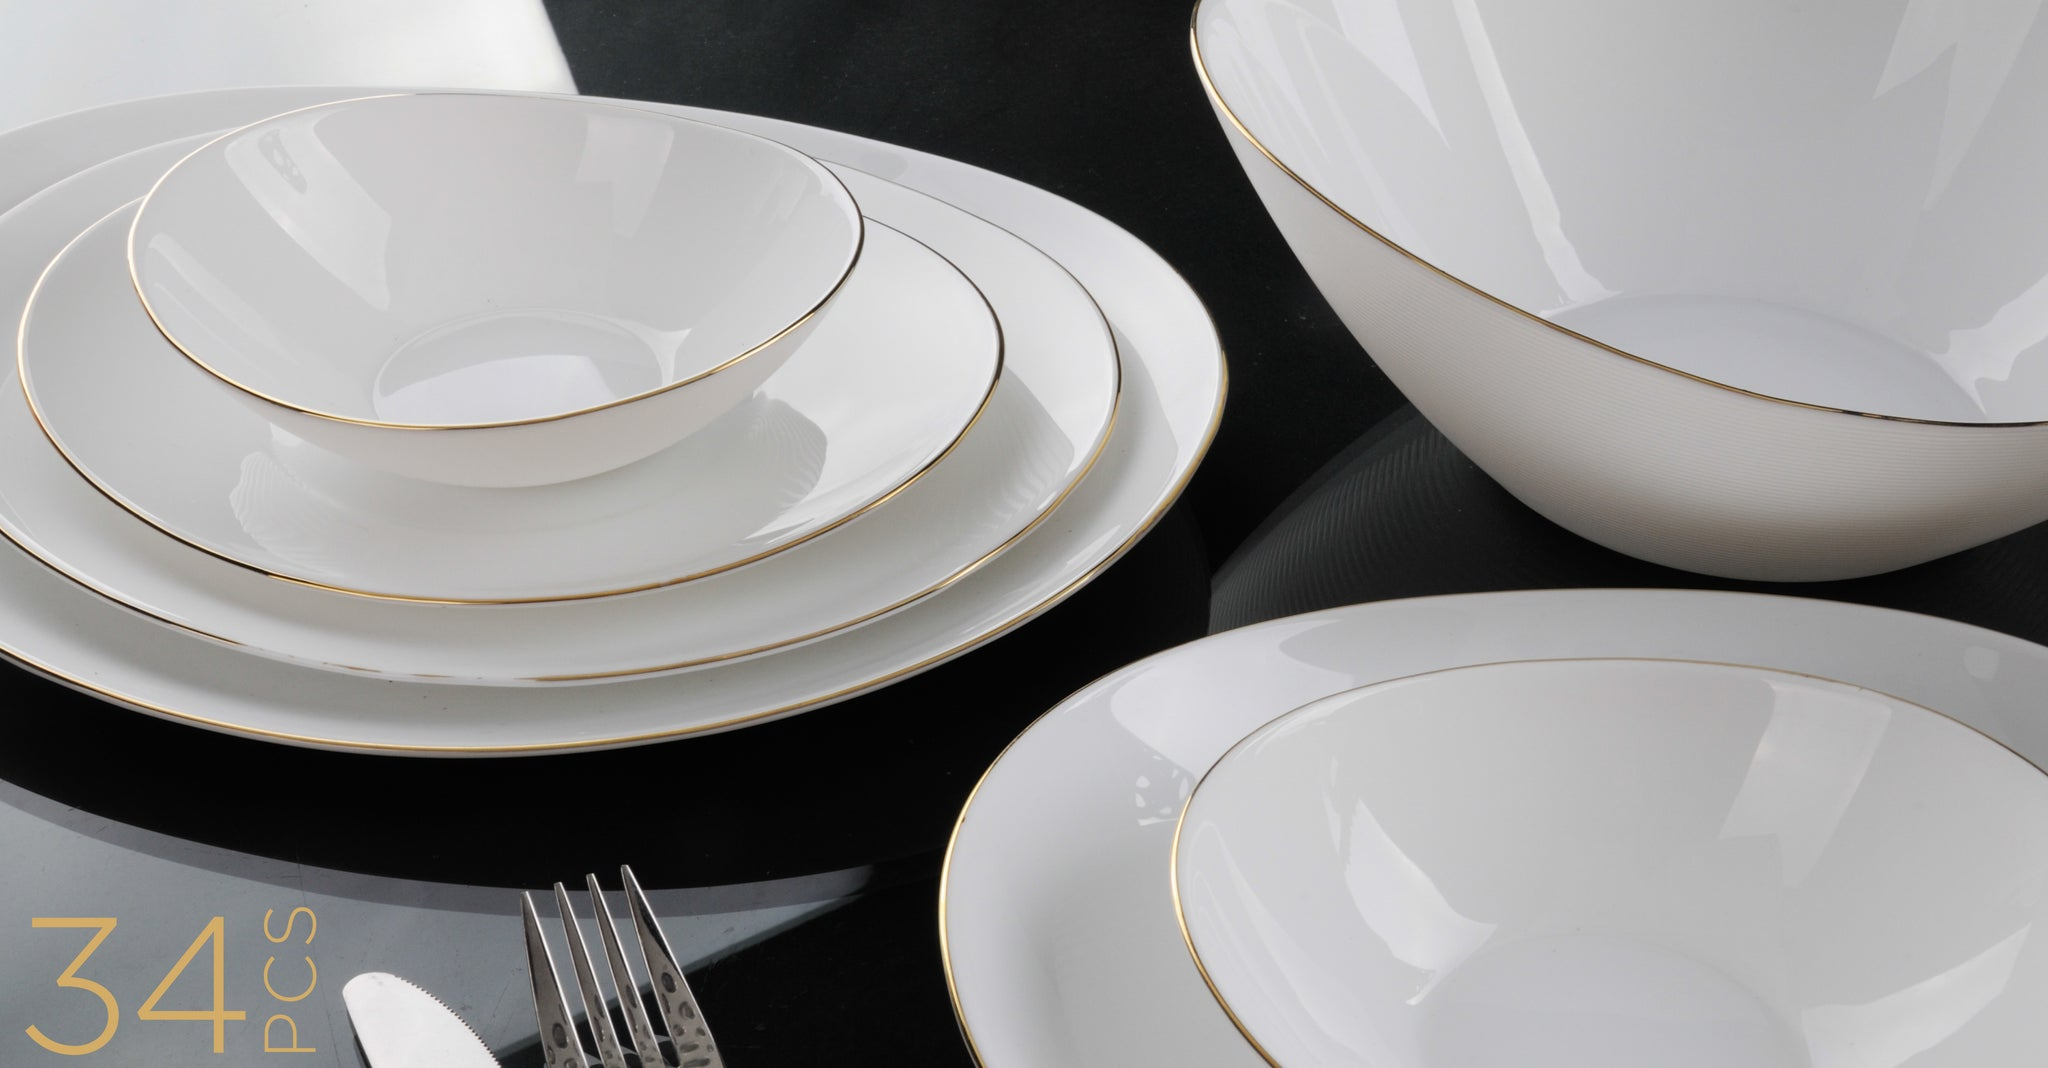 Royalford RF7880 Opal Artisan Gold Dinner Set, 34pieces